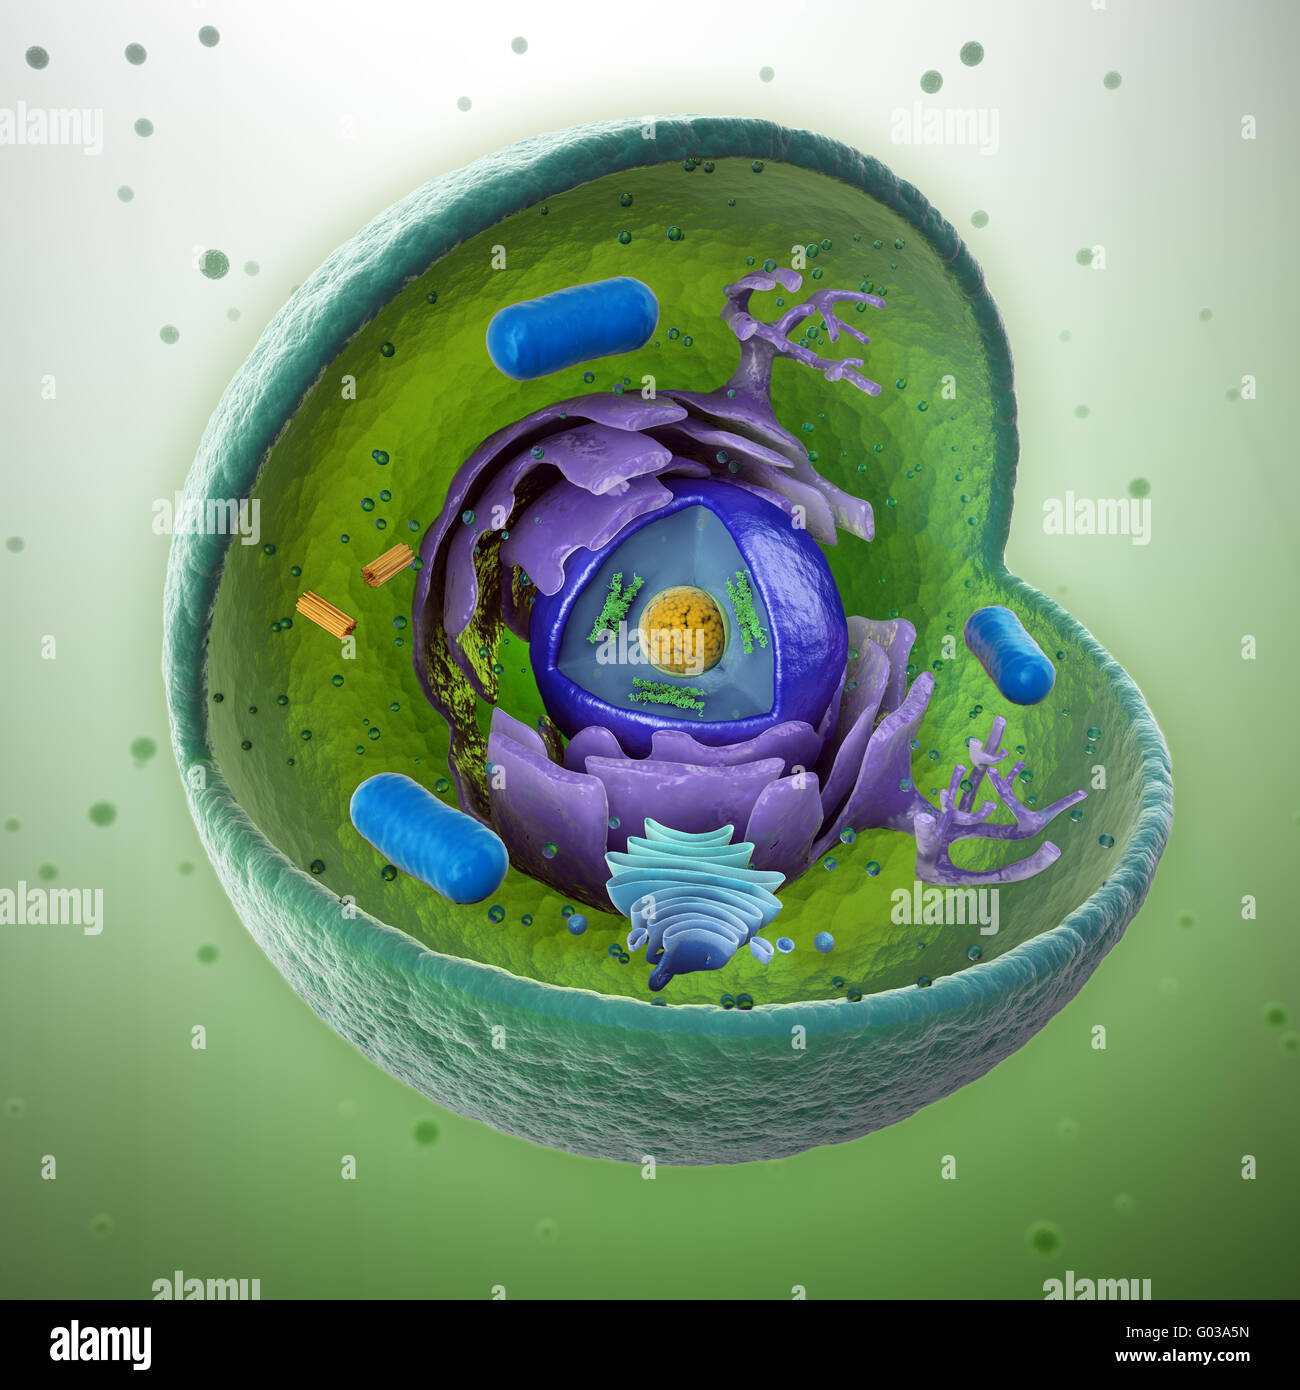 Animal Cell Stock Photos Images Alamy Diagram Labeled 3d View Original Image Cut Away Scientifically Correct Illustration